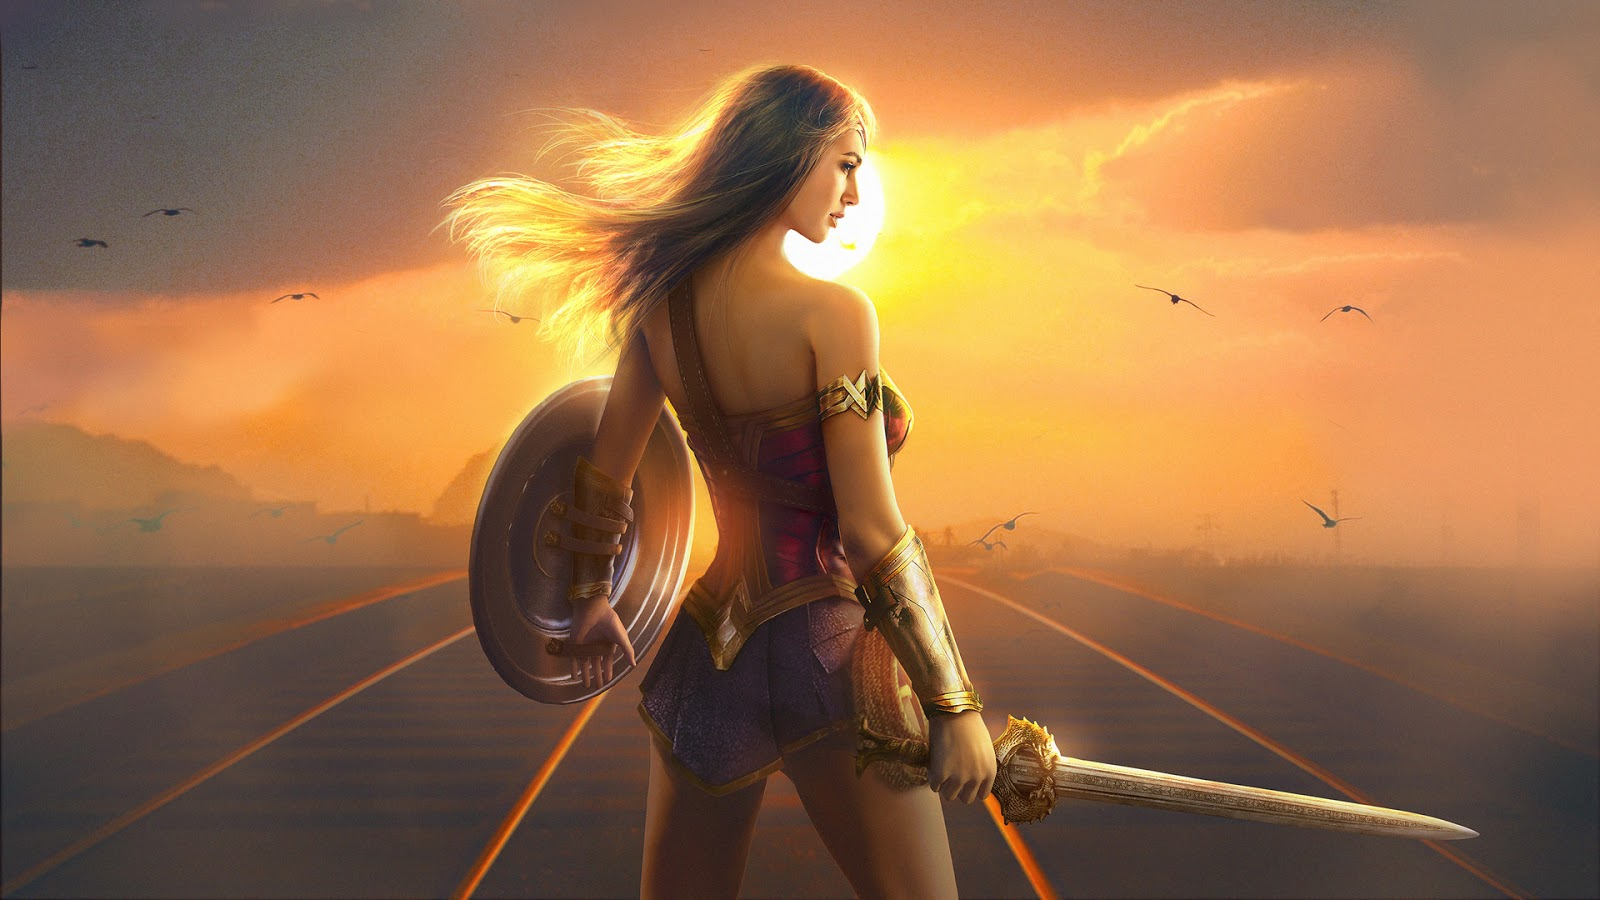 Wonder Woman Fan Art HD Wallpaper